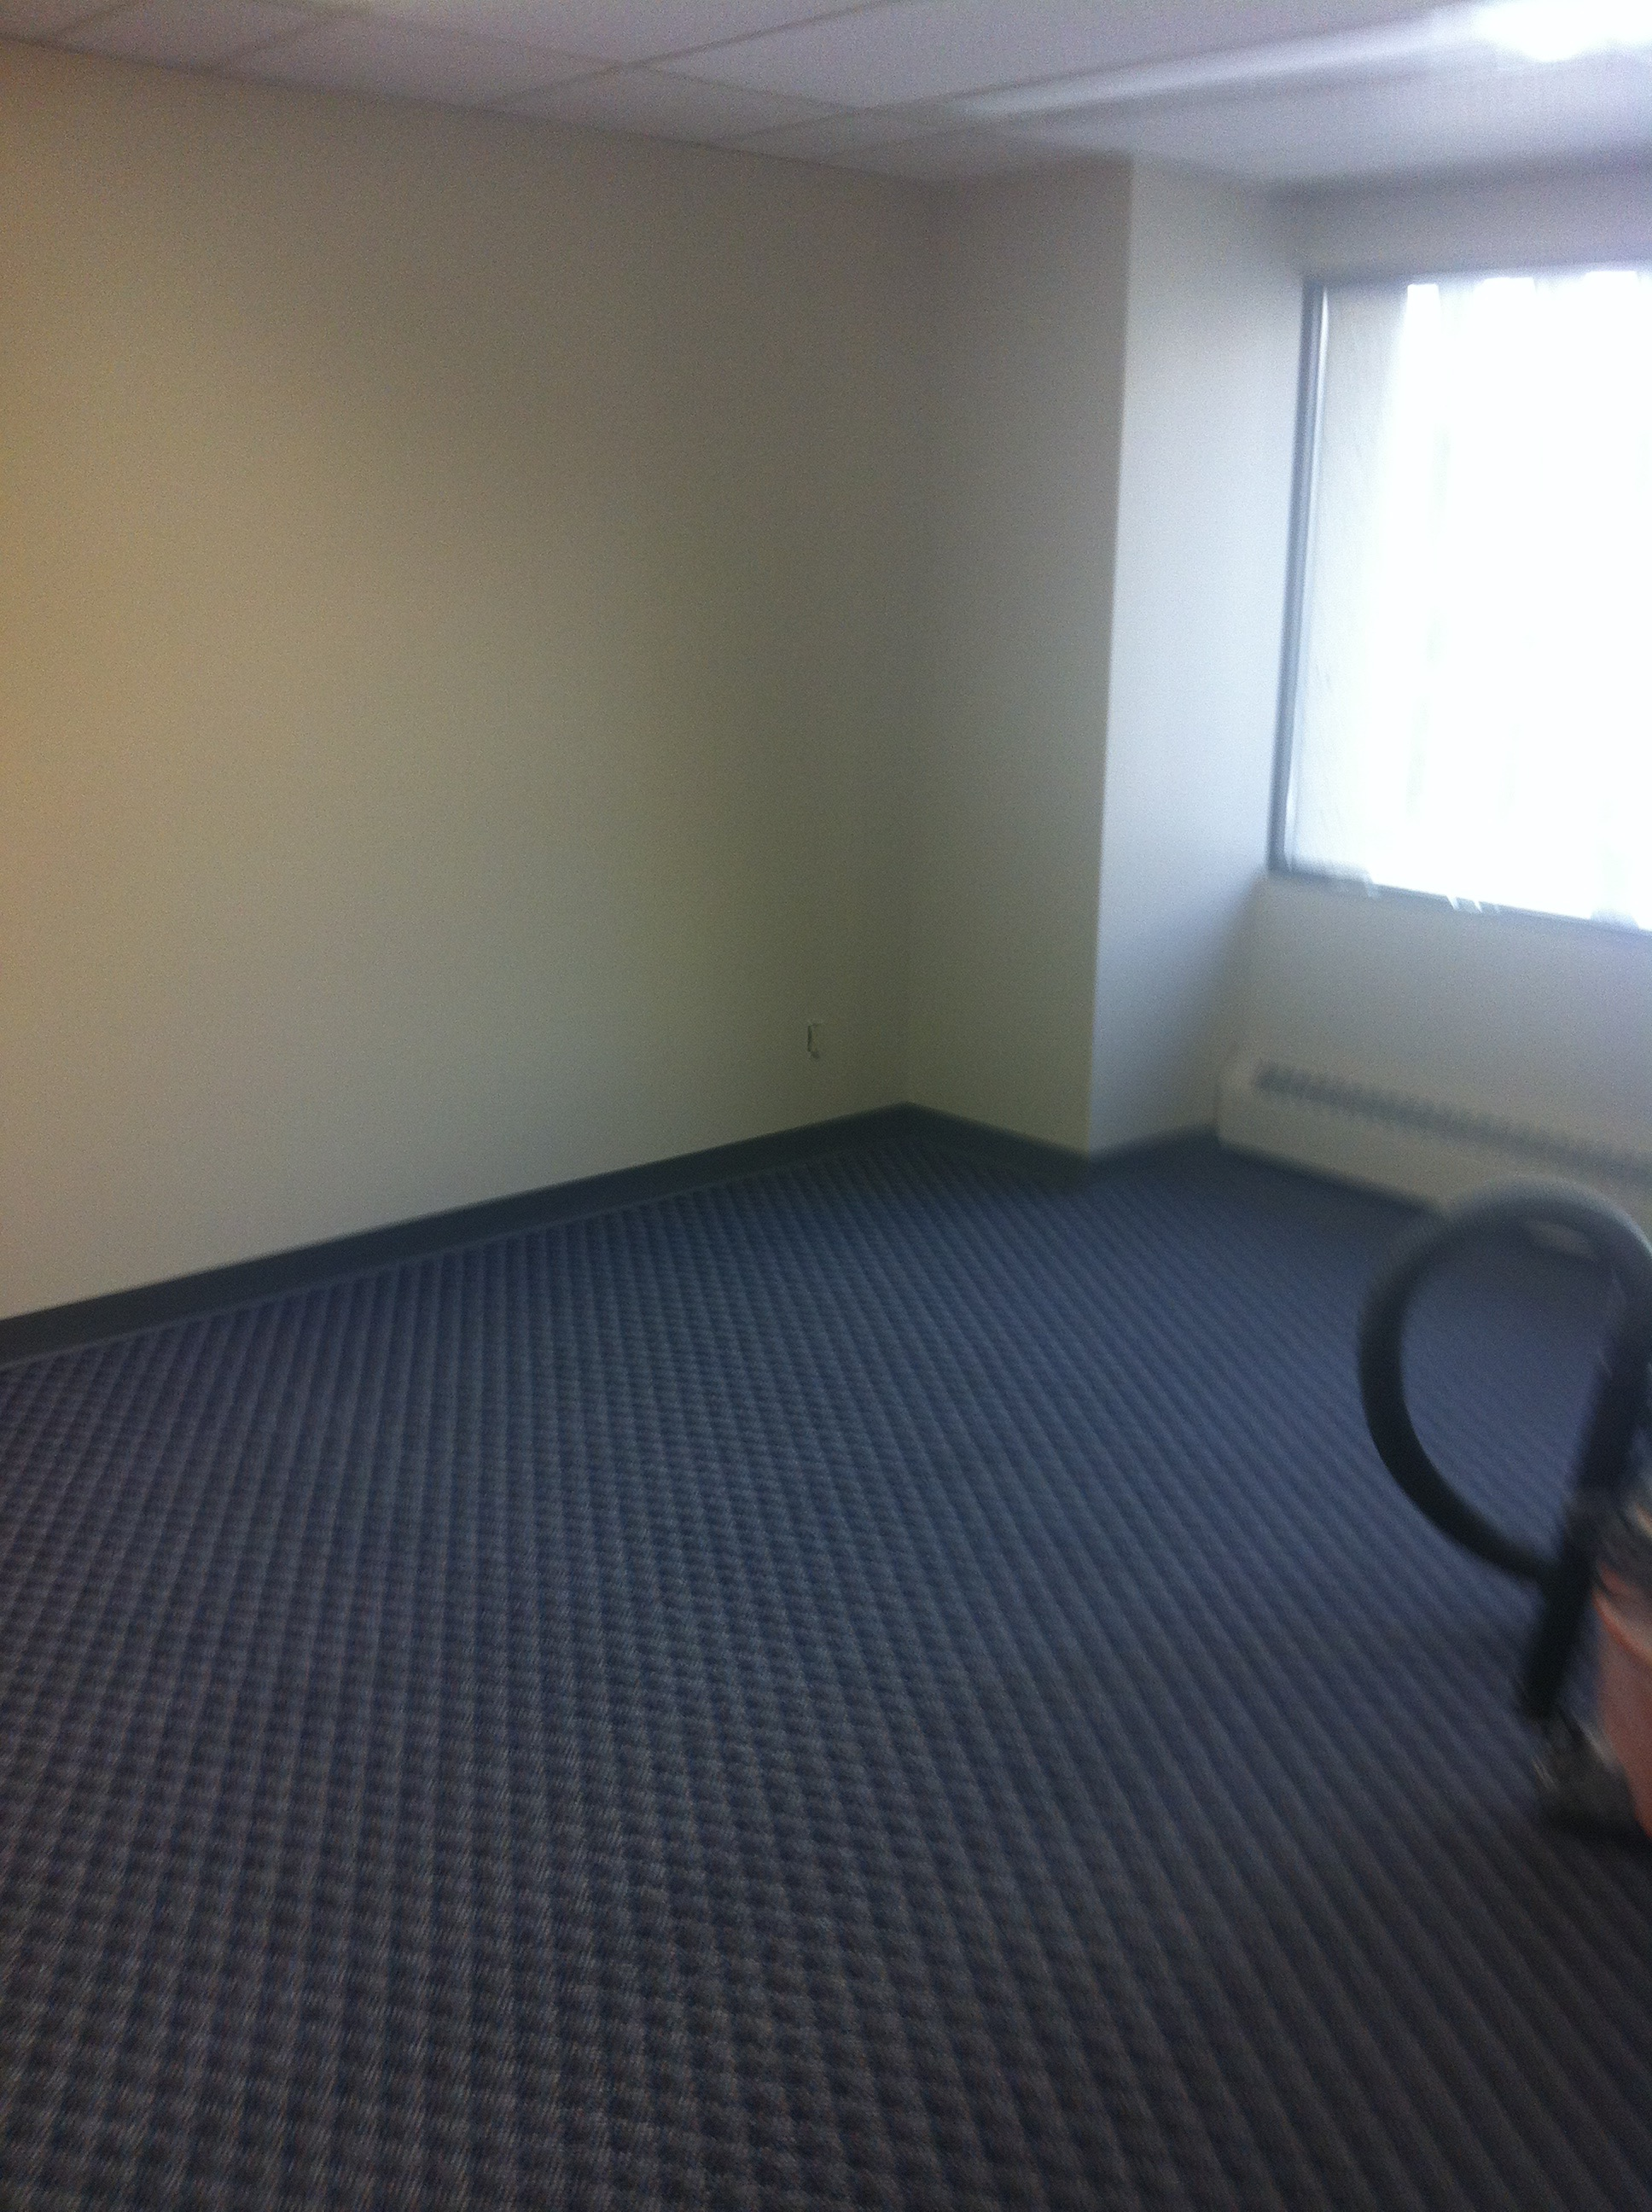 FC07  Floor Coverings - General Contractors Commercial Renovations in Edmonton, Office and Warehouse Project Contractors